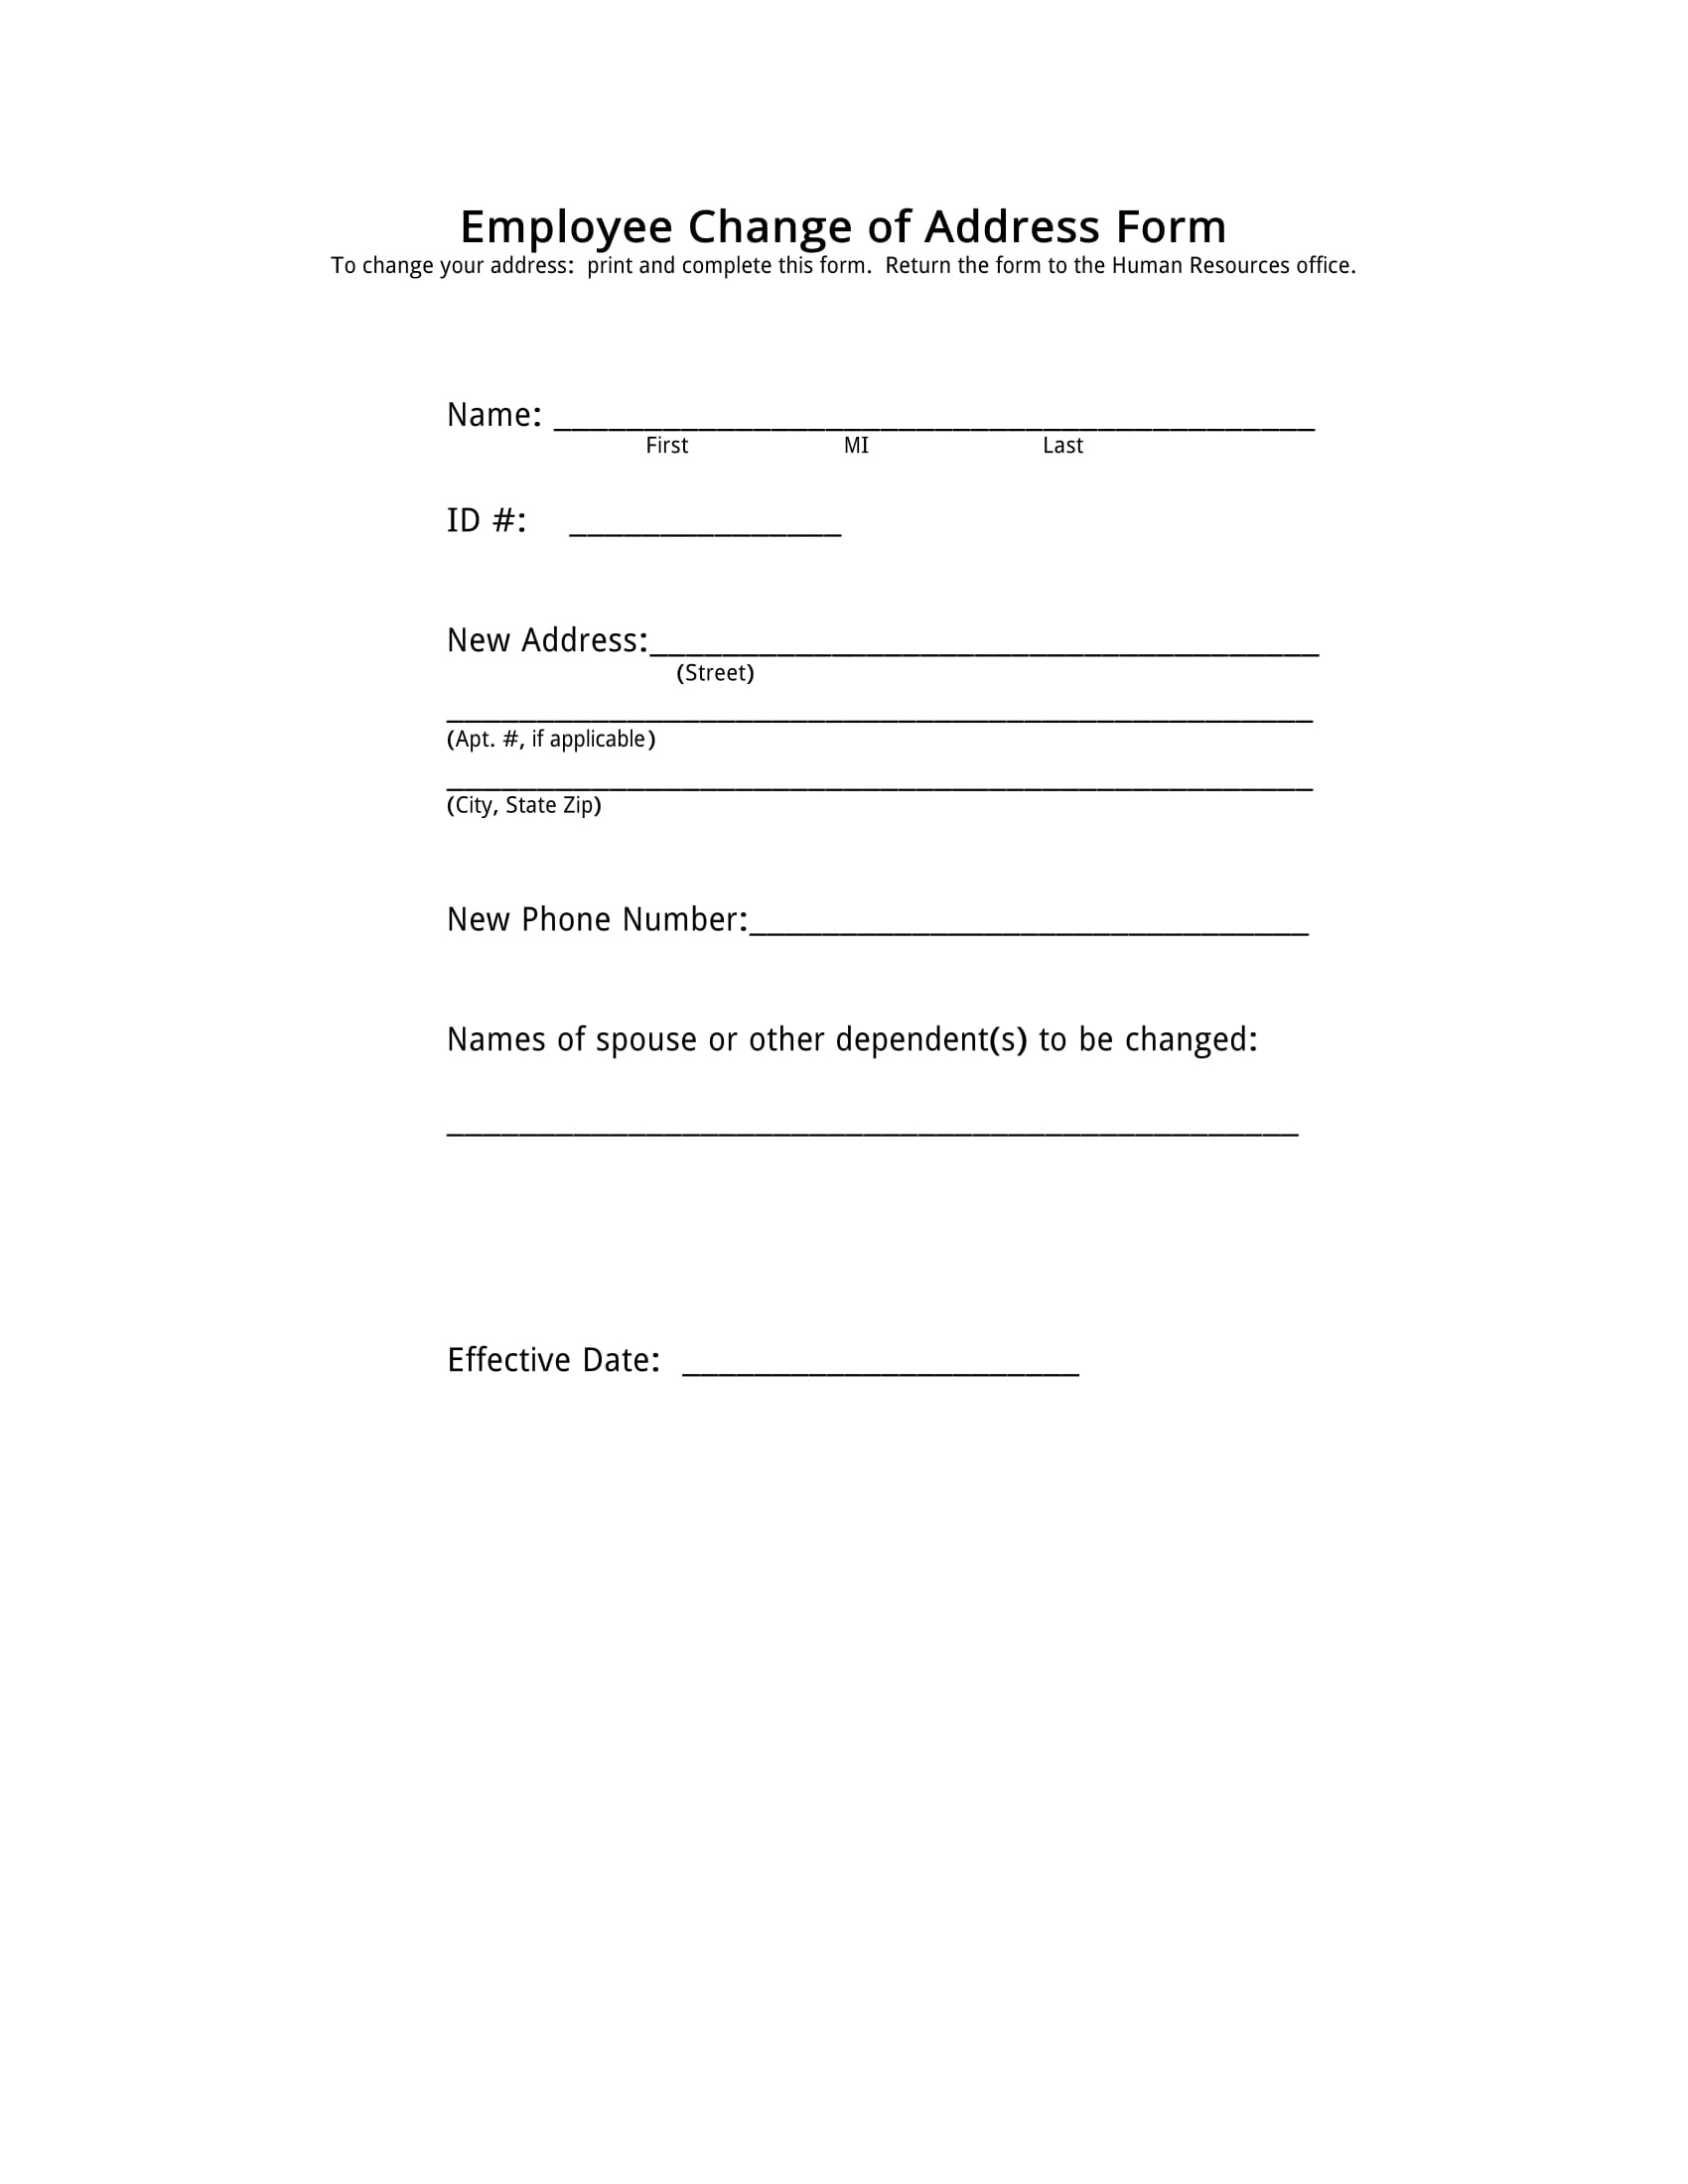 employee change of address form 1